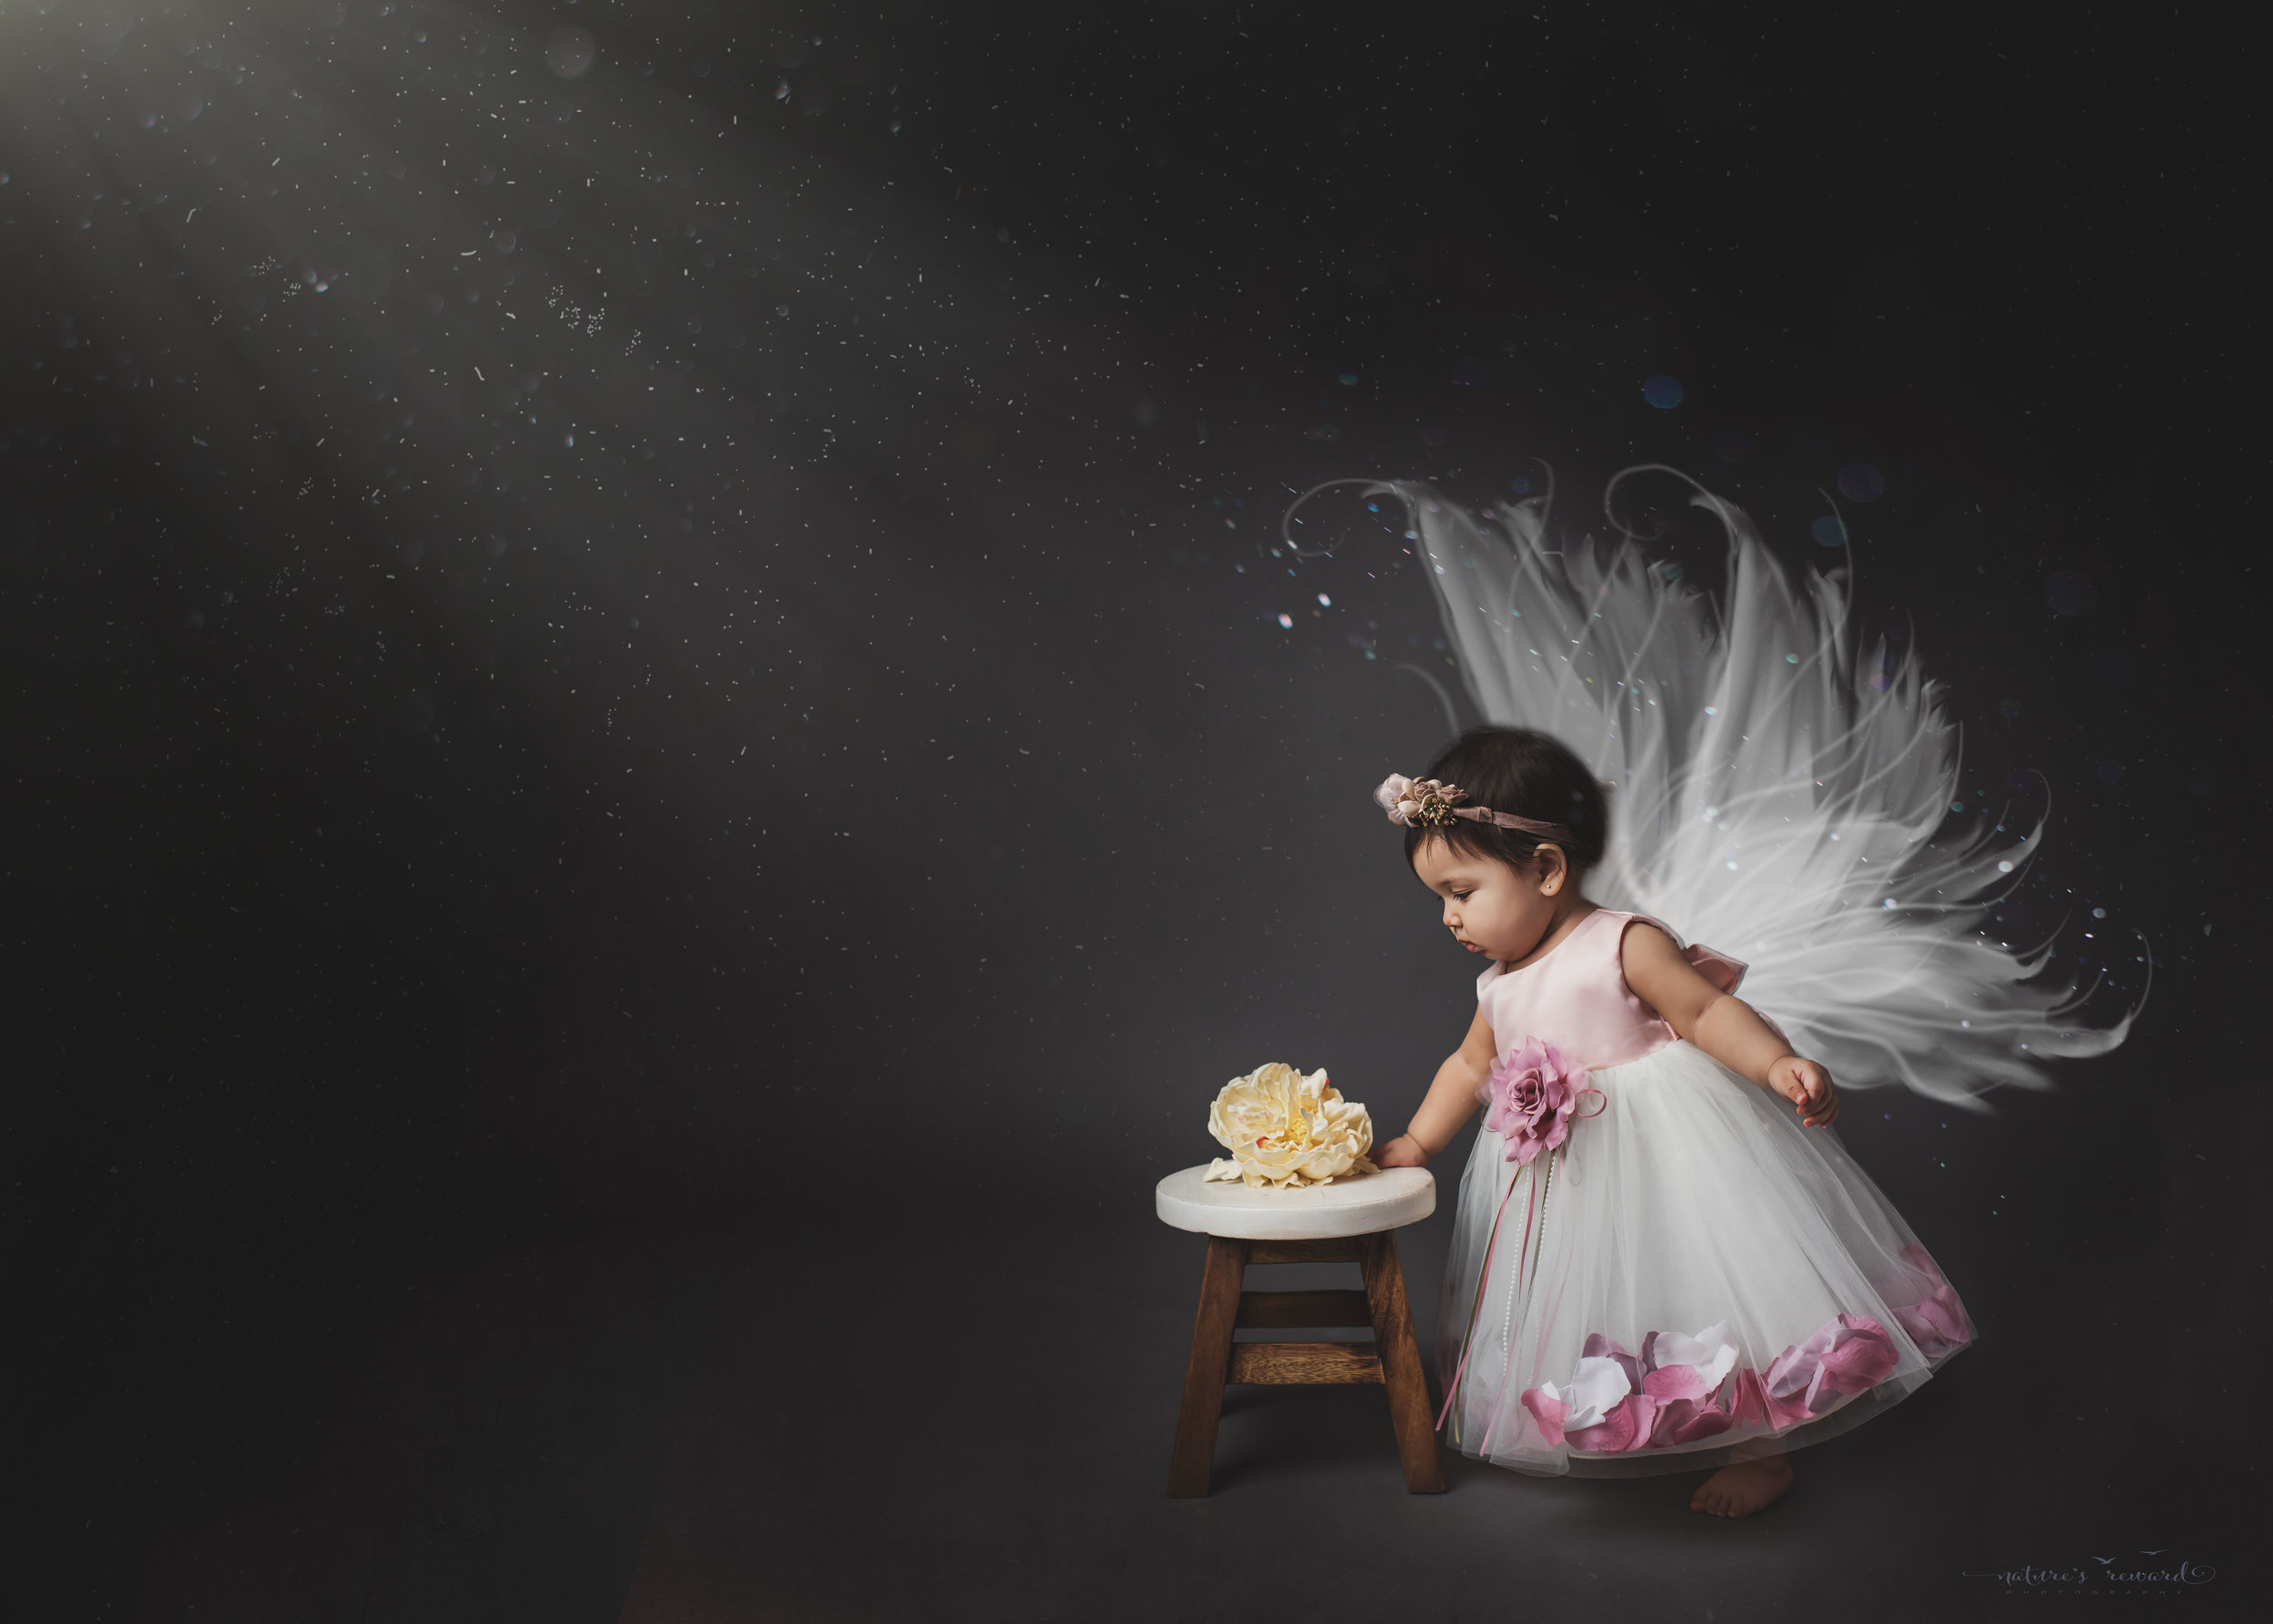 First year portrait, and a fairy at that, a portrait by Nature's Reward Photography